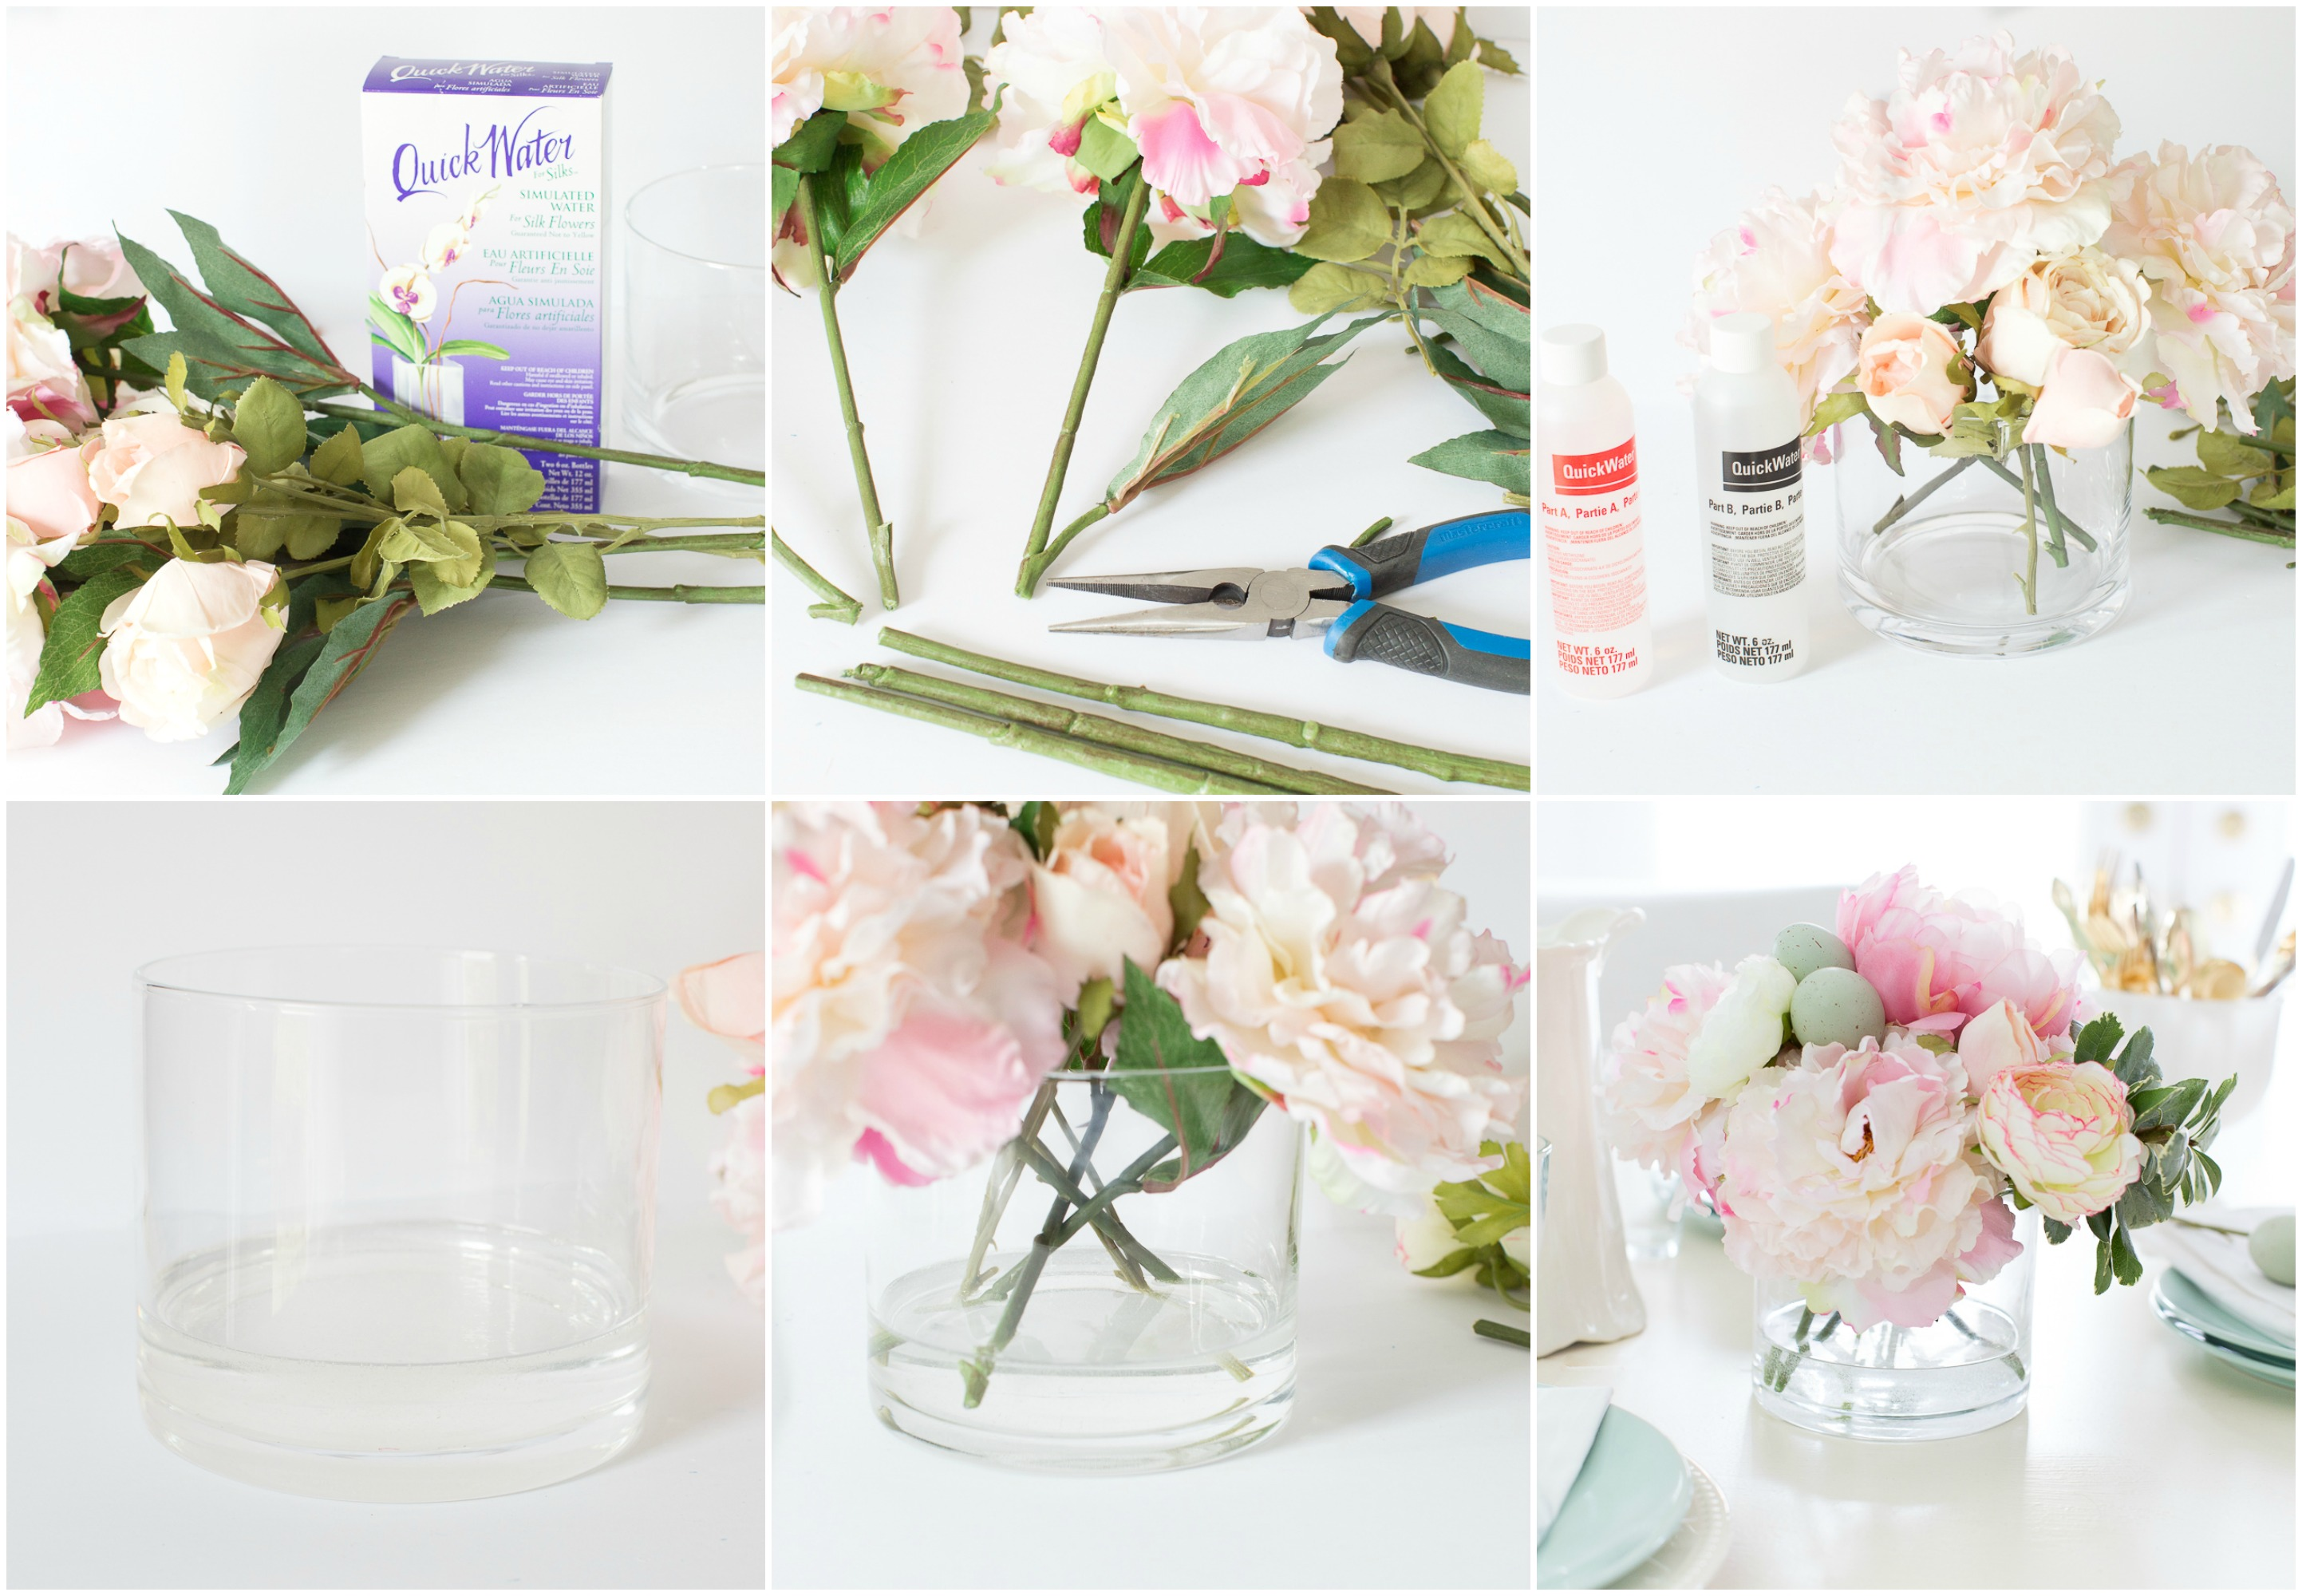 Diy faux water for artificial flowers fauxwaterforarticifialflowersdiy reviewsmspy